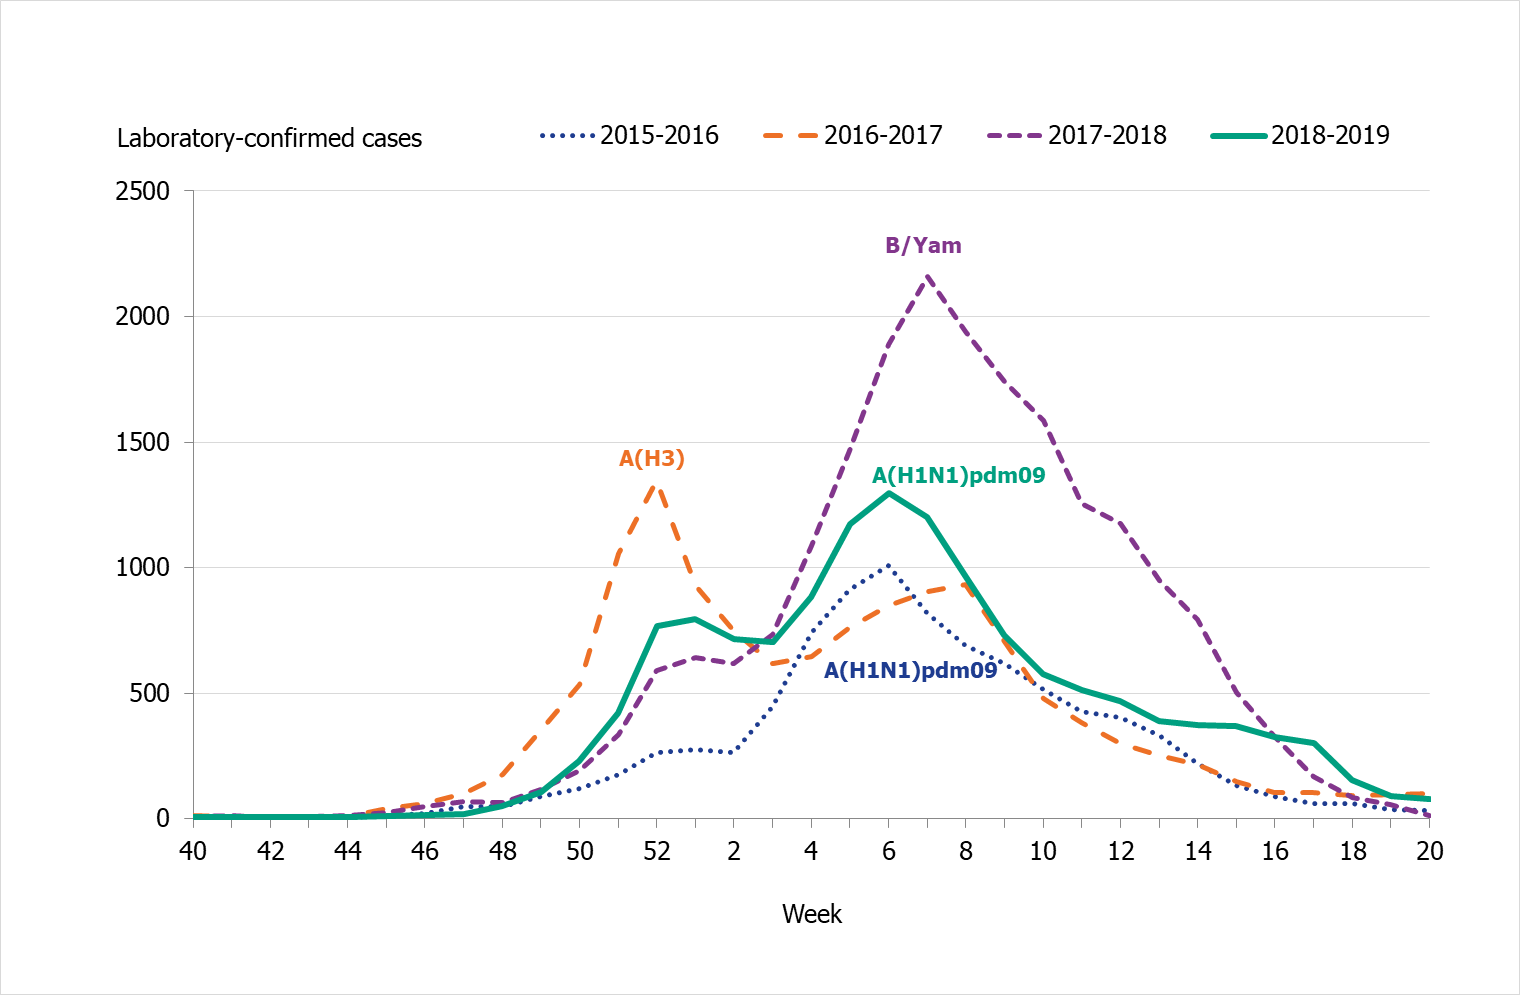 Graph showing the weekly number of laboratory-confirmed cases of influenza (all types) and the dominating influenza type(s) per season, 2015–2019.